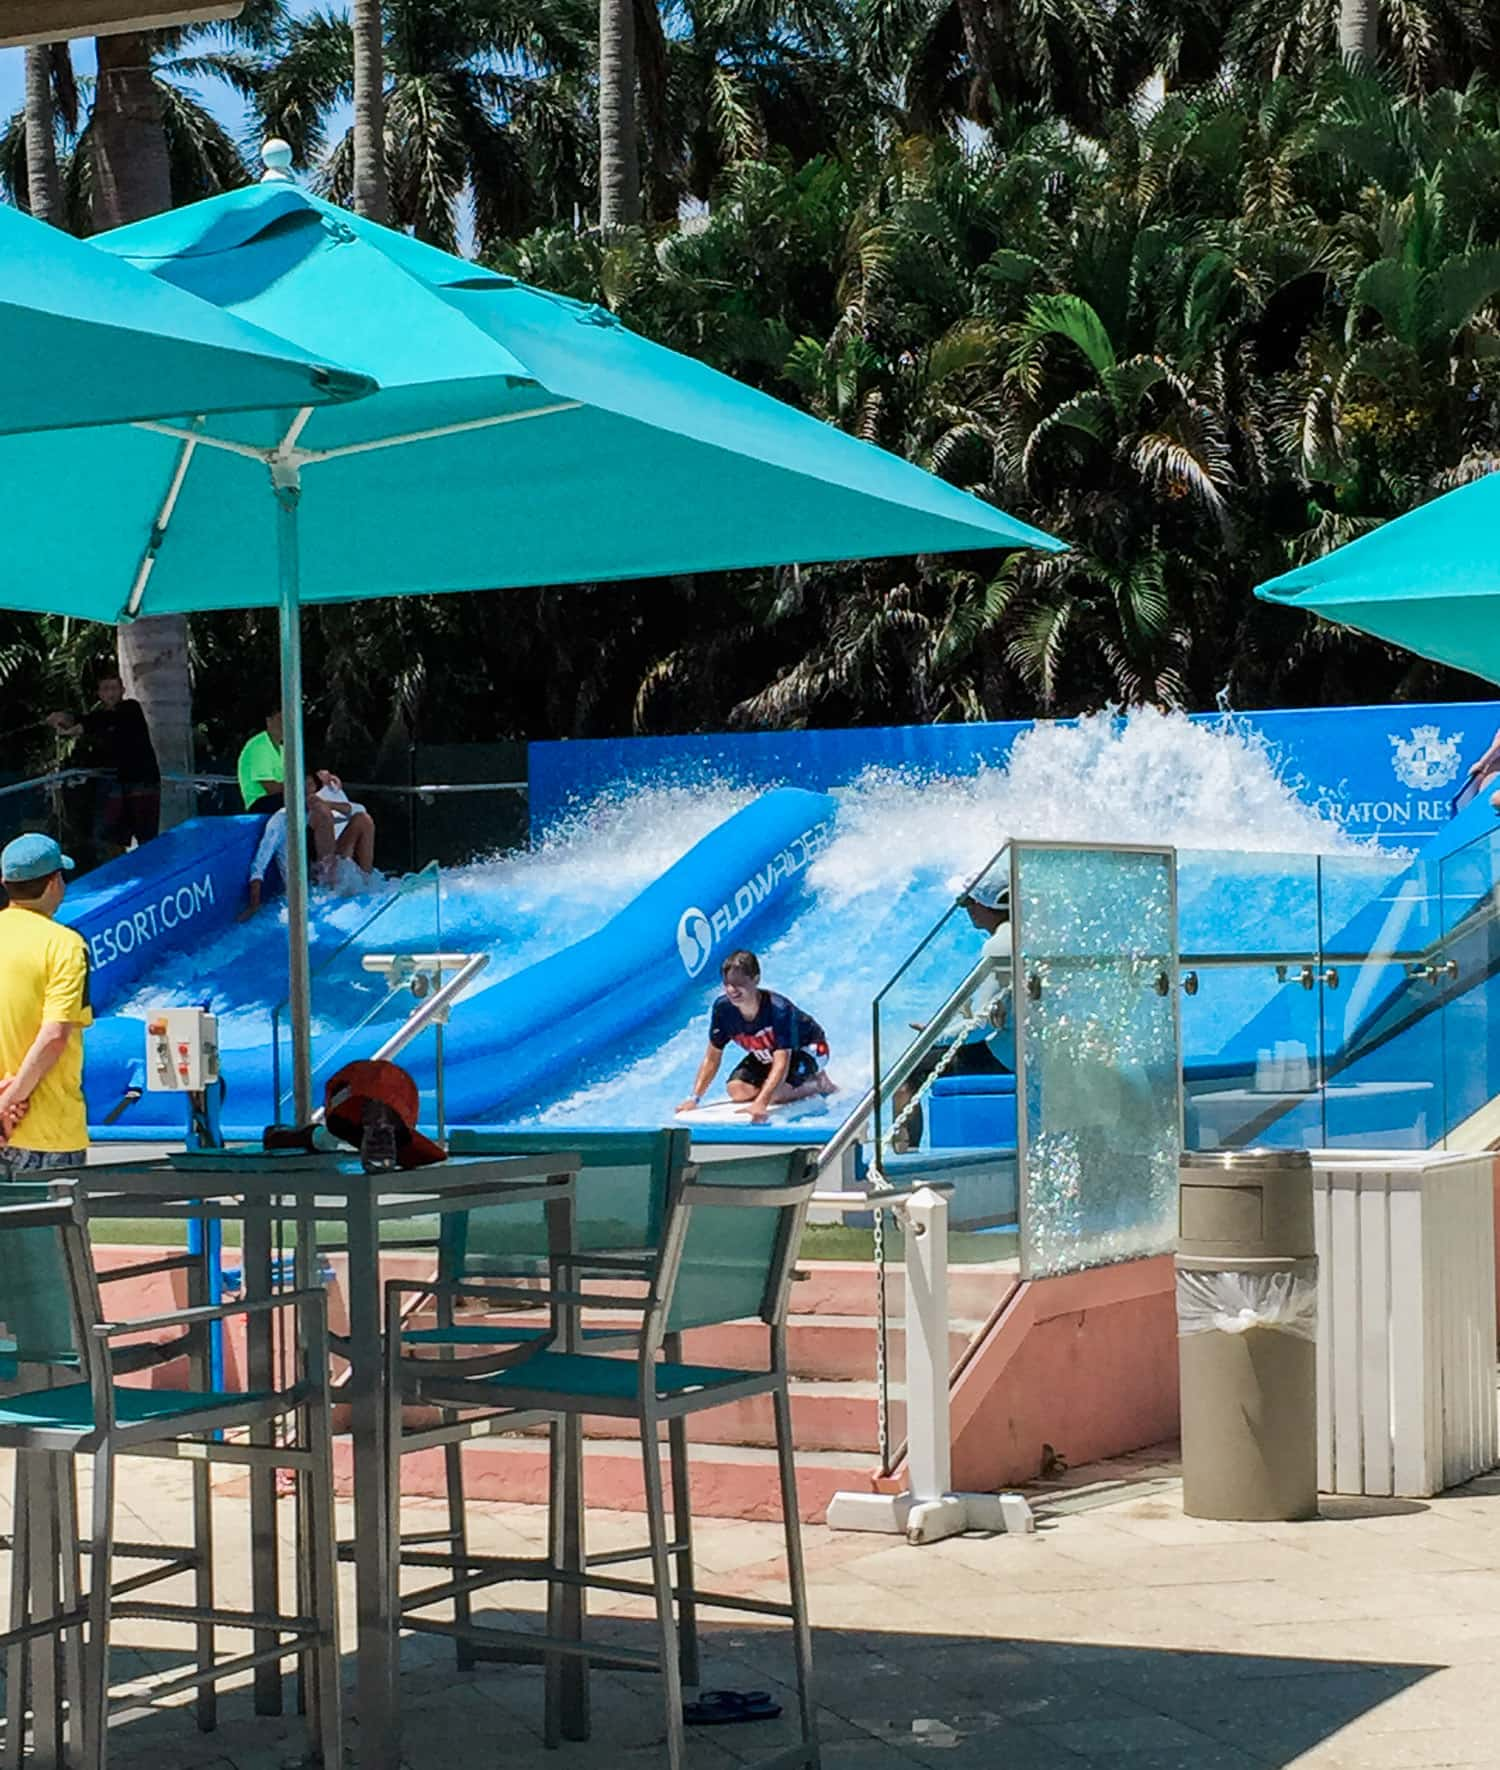 FlowRider at the Boca Resort + A full review of the Boca Raton Resort & Club by blogger Ashley Brooke Nicholas